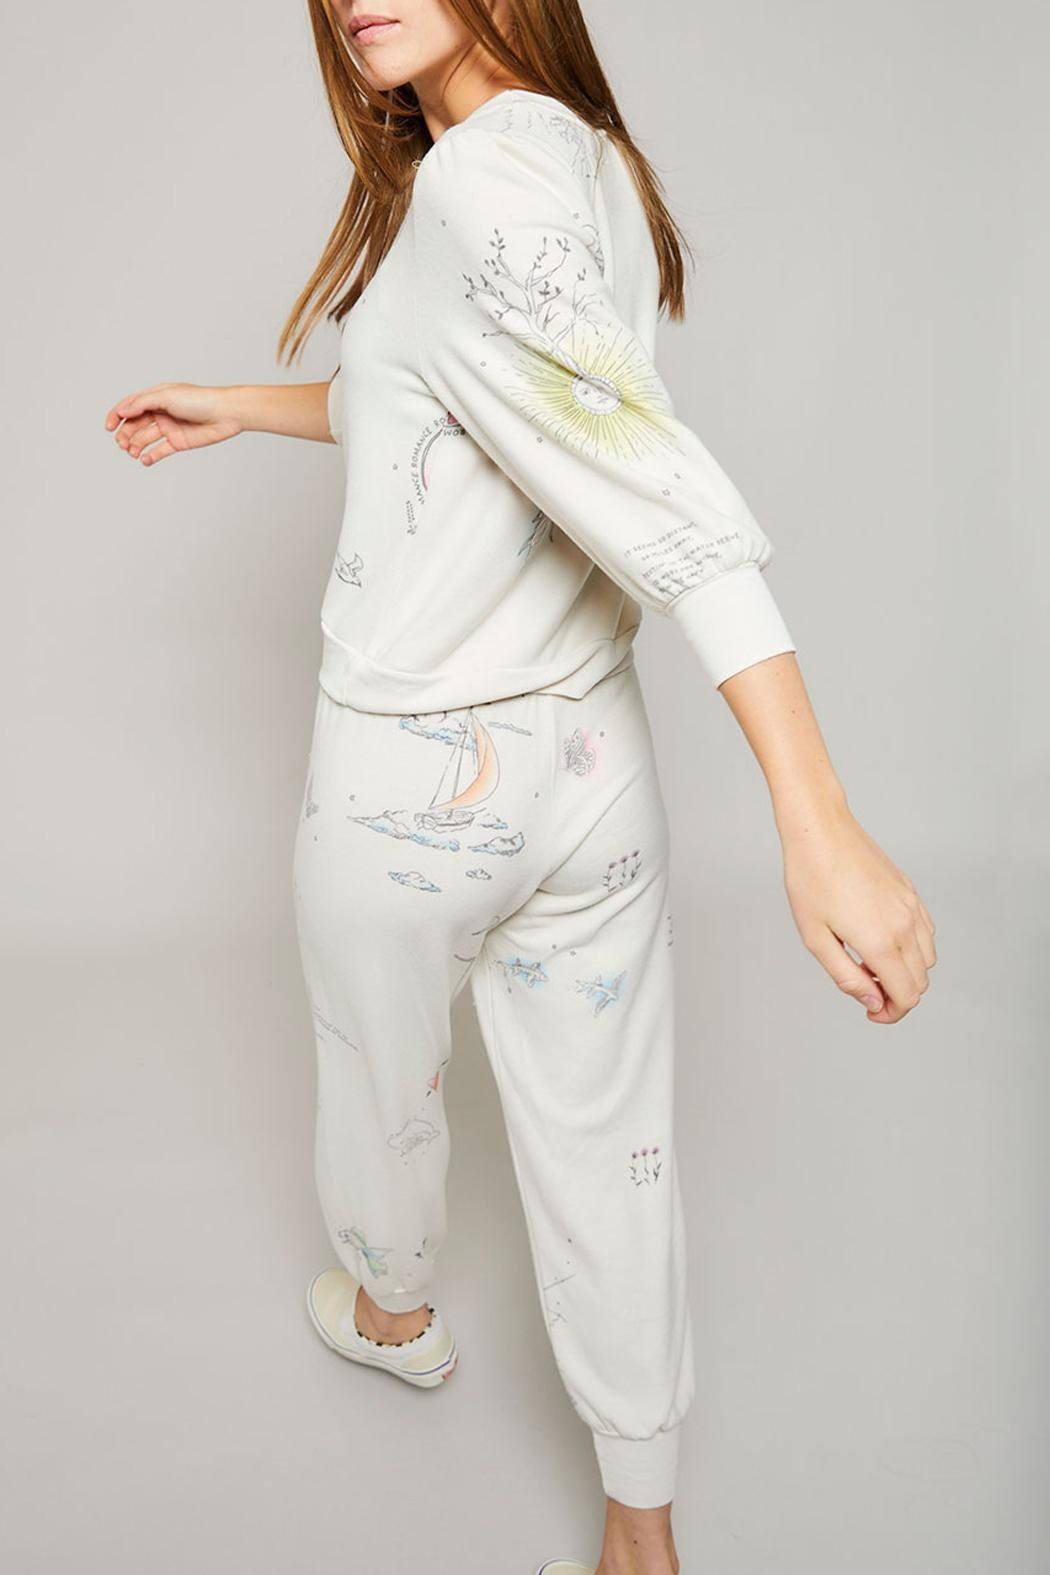 All Things Fabulous Catalina Cozy Sweats - Side Cropped Image